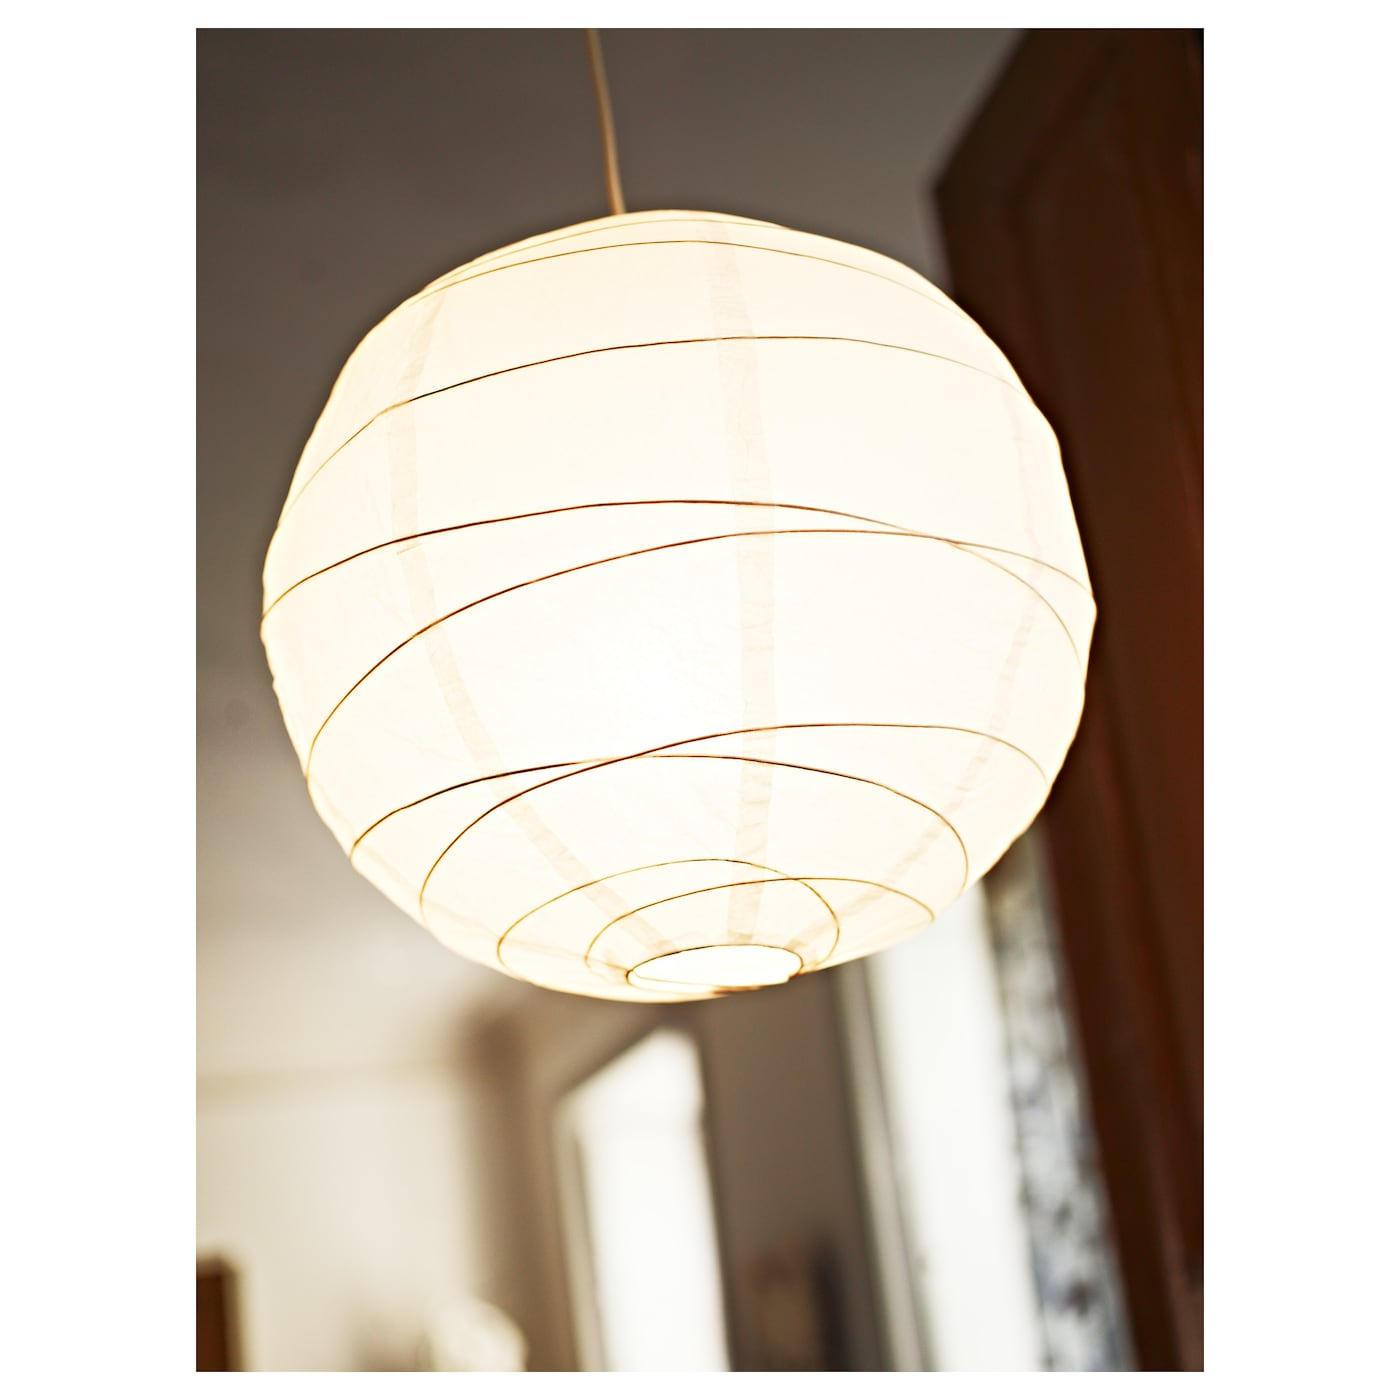 regolit pendant lamp shade white 45 cm ikea. Black Bedroom Furniture Sets. Home Design Ideas